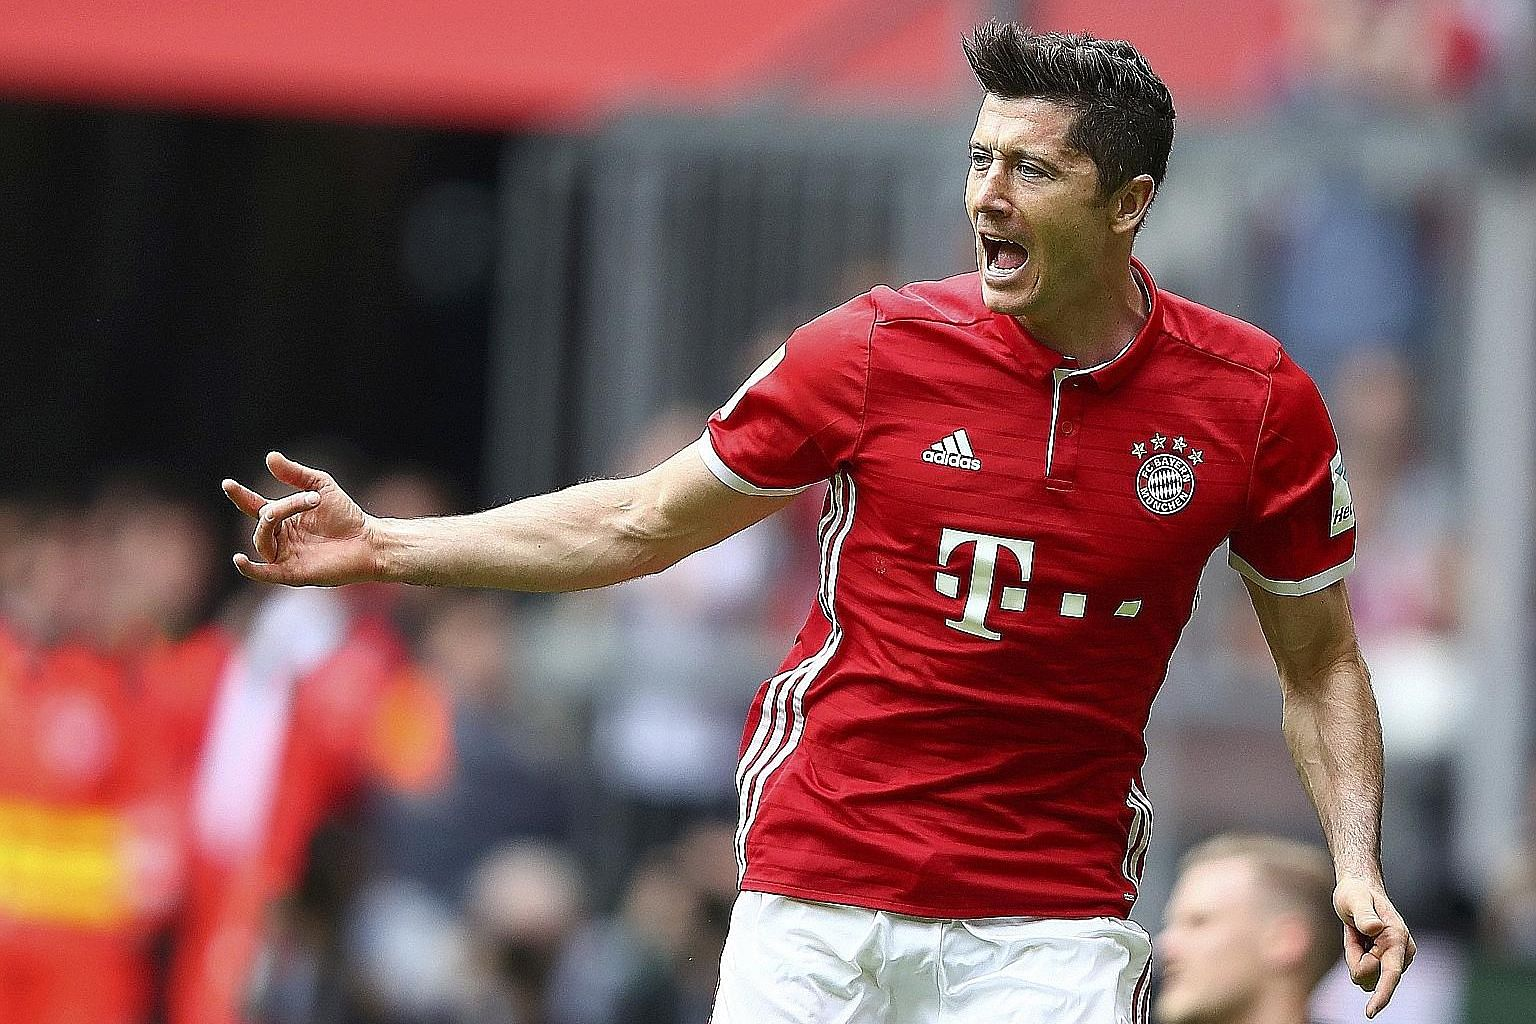 Robert Lewandowski's return will be cheered by Bayern, with Javi Martinez suspended and Mats Hummels and Jerome Boateng not fully fit yet.